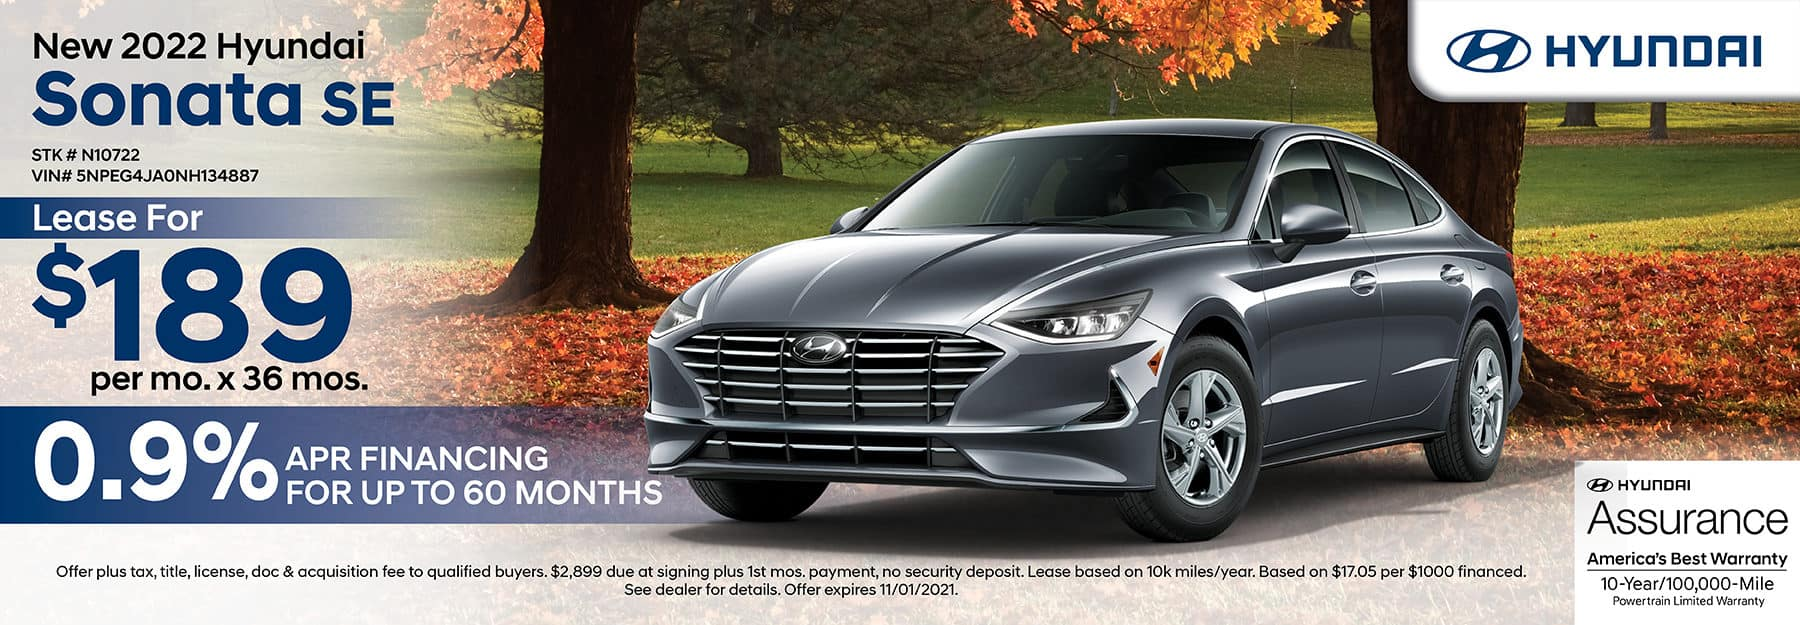 2022 Hyundai Sonata SE lease for $189 per month for 36 months with 0.9% APR financing for up to 60 months